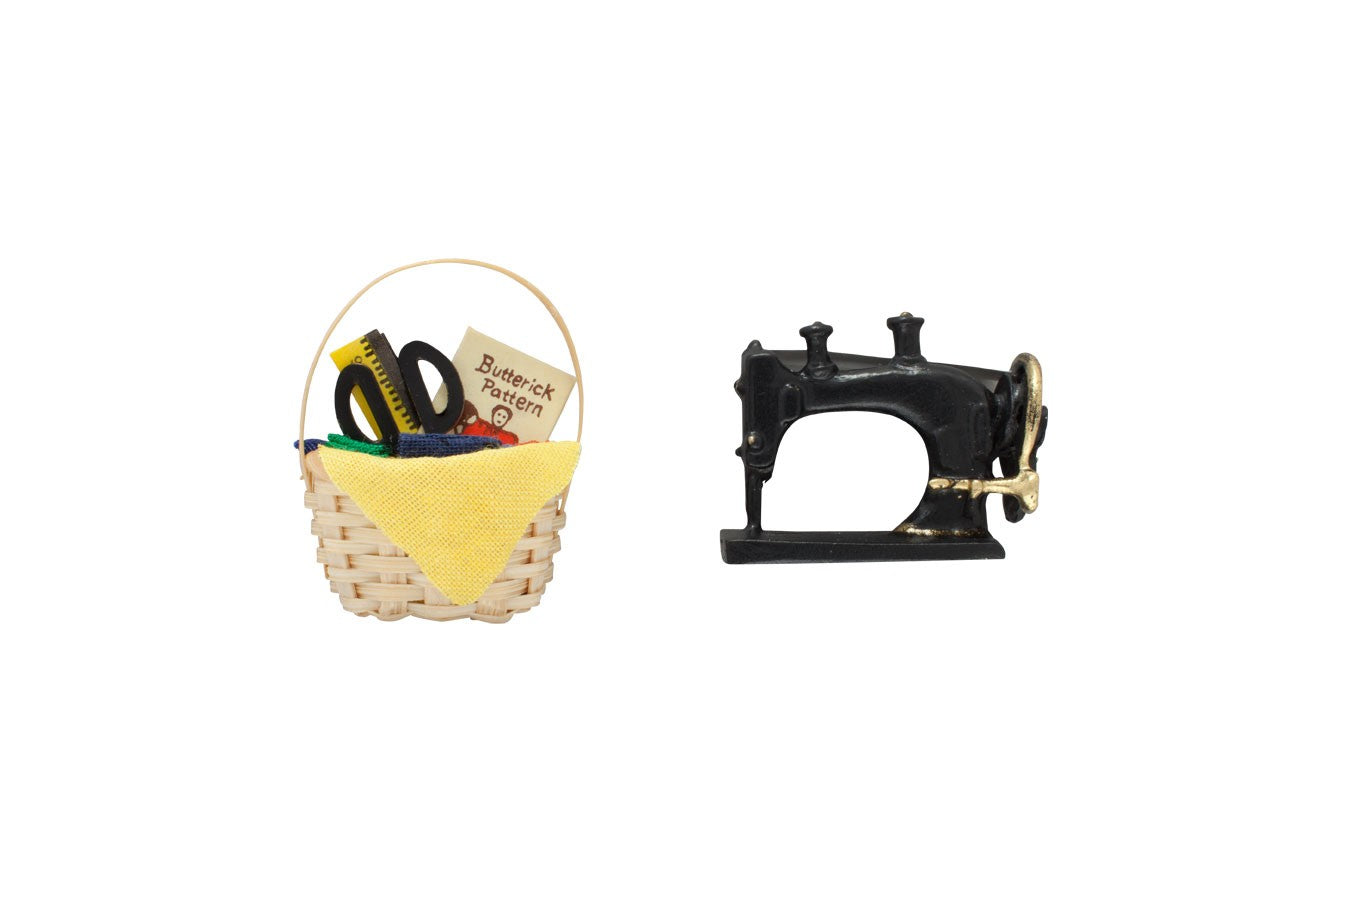 Sewing Machine Set